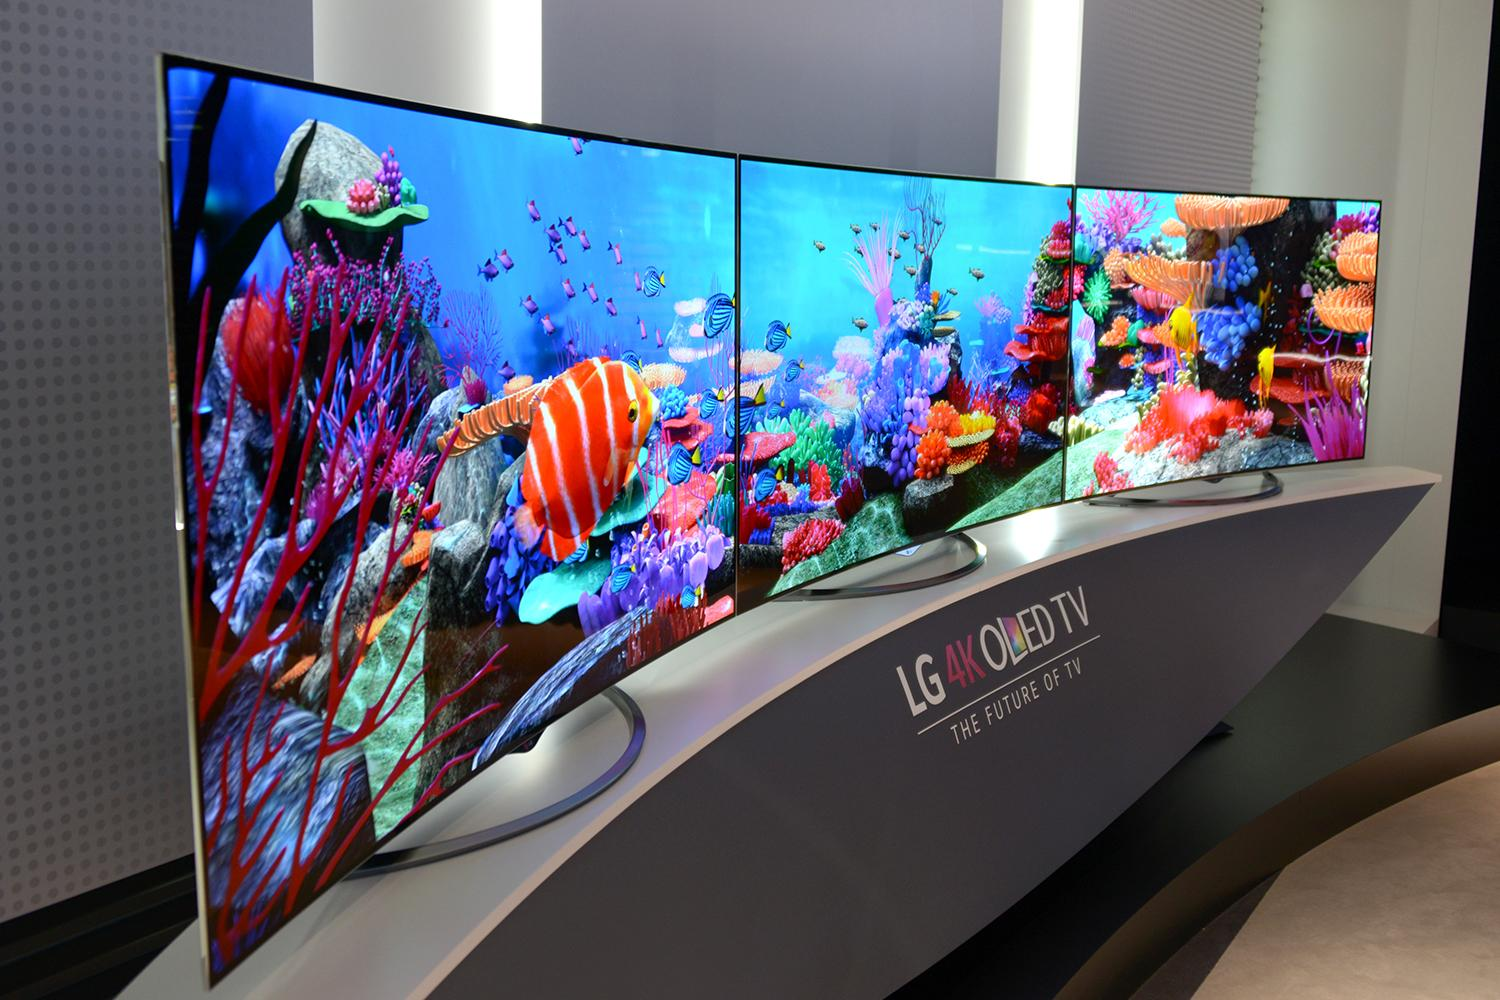 theater lg officially prices k oled tvs